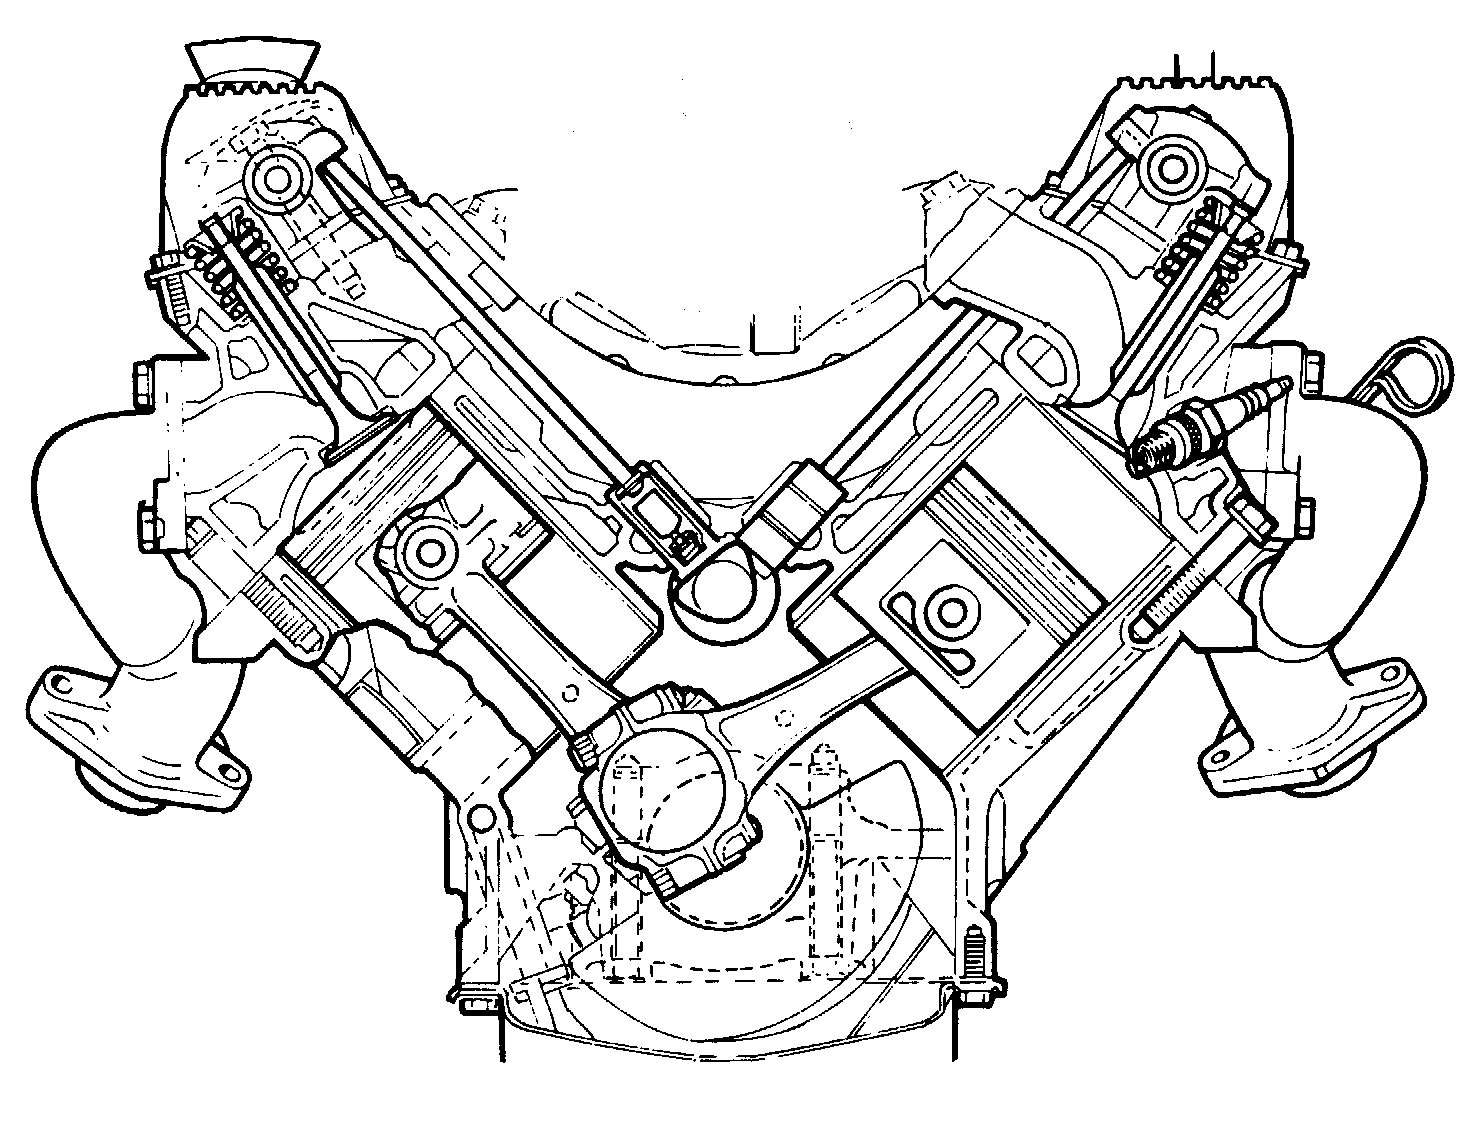 V8 Engine Exploded View Diagram Car, V8, Free Engine Image ...